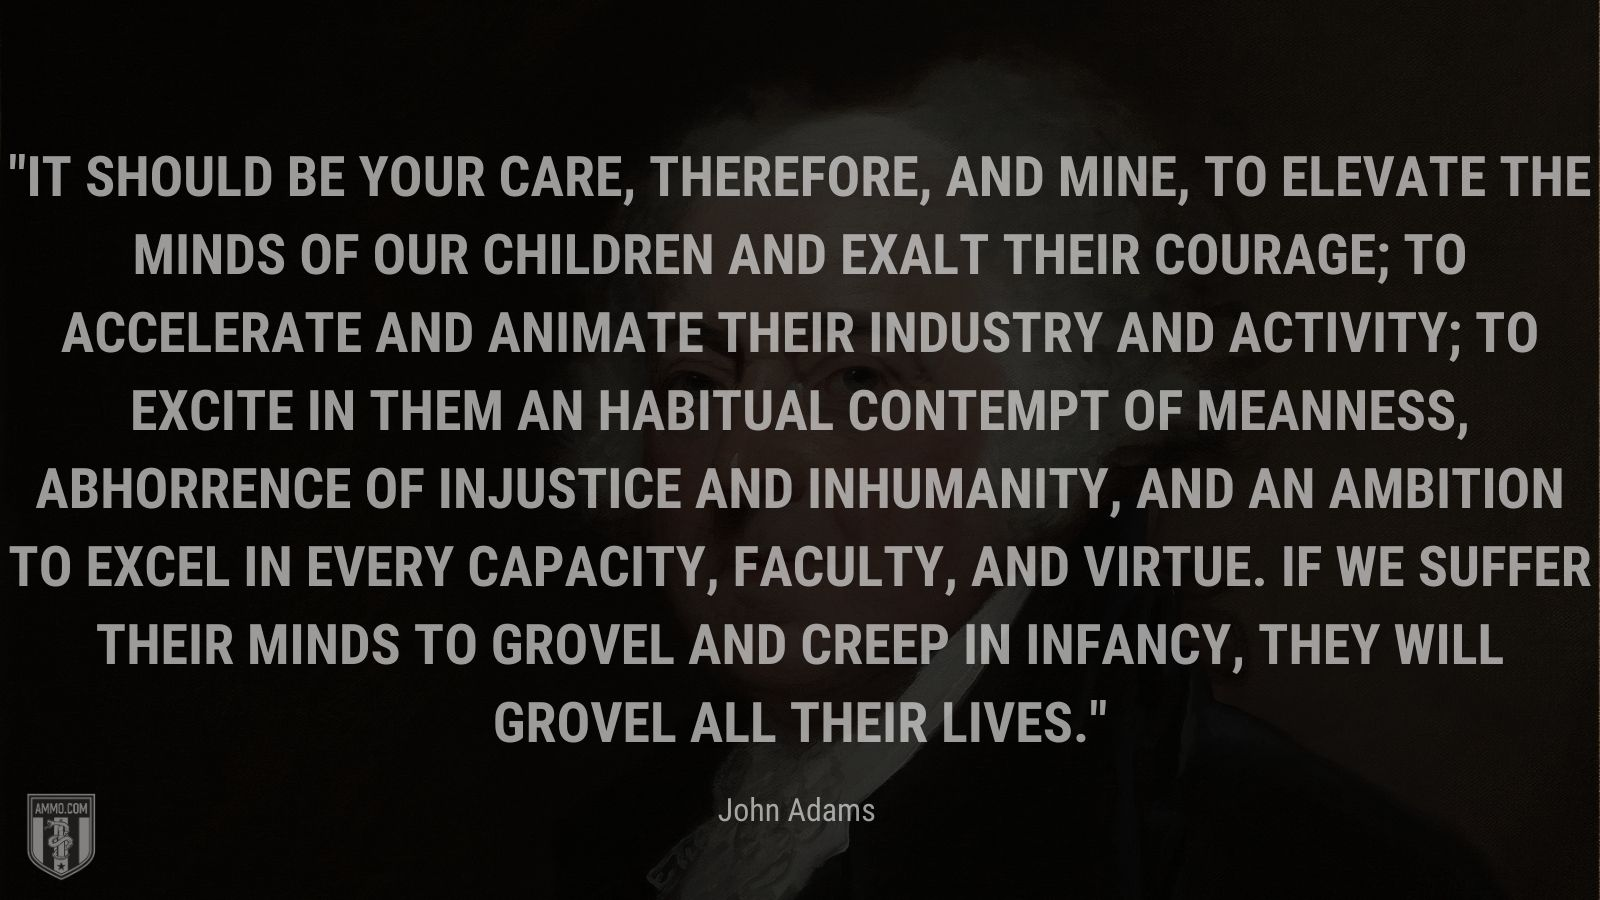 """""""It should be your care, therefore, and mine, to elevate the minds of our children and exalt their courage; to accelerate and animate their industry and activity; to excite in them an habitual contempt of meanness, abhorrence of injustice and inhumanity, and an ambition to excel in every capacity, faculty, and virtue. If we suffer their minds to grovel and creep in infancy, they will grovel all their lives."""" - John Adams"""